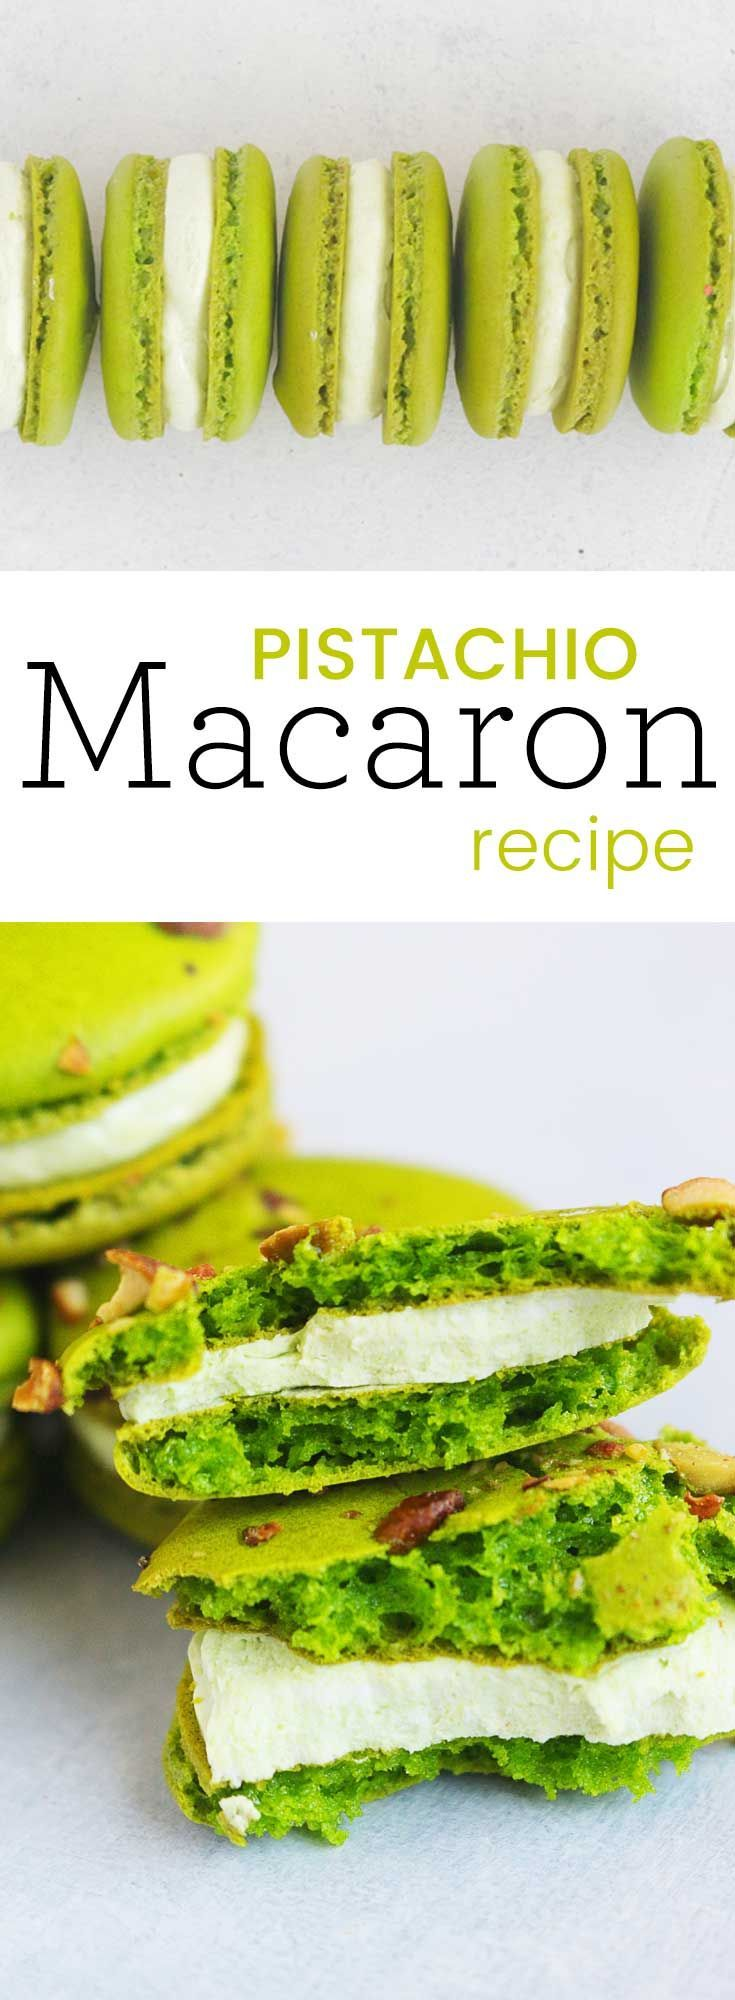 Pistachio macarons with Pistachio buttercream are easily my most favorite macaron flavor. They are classic, rich, and rather pretty to look at. Use the Swiss Meringue Buttercream included or a pistachio nut butter to fill.